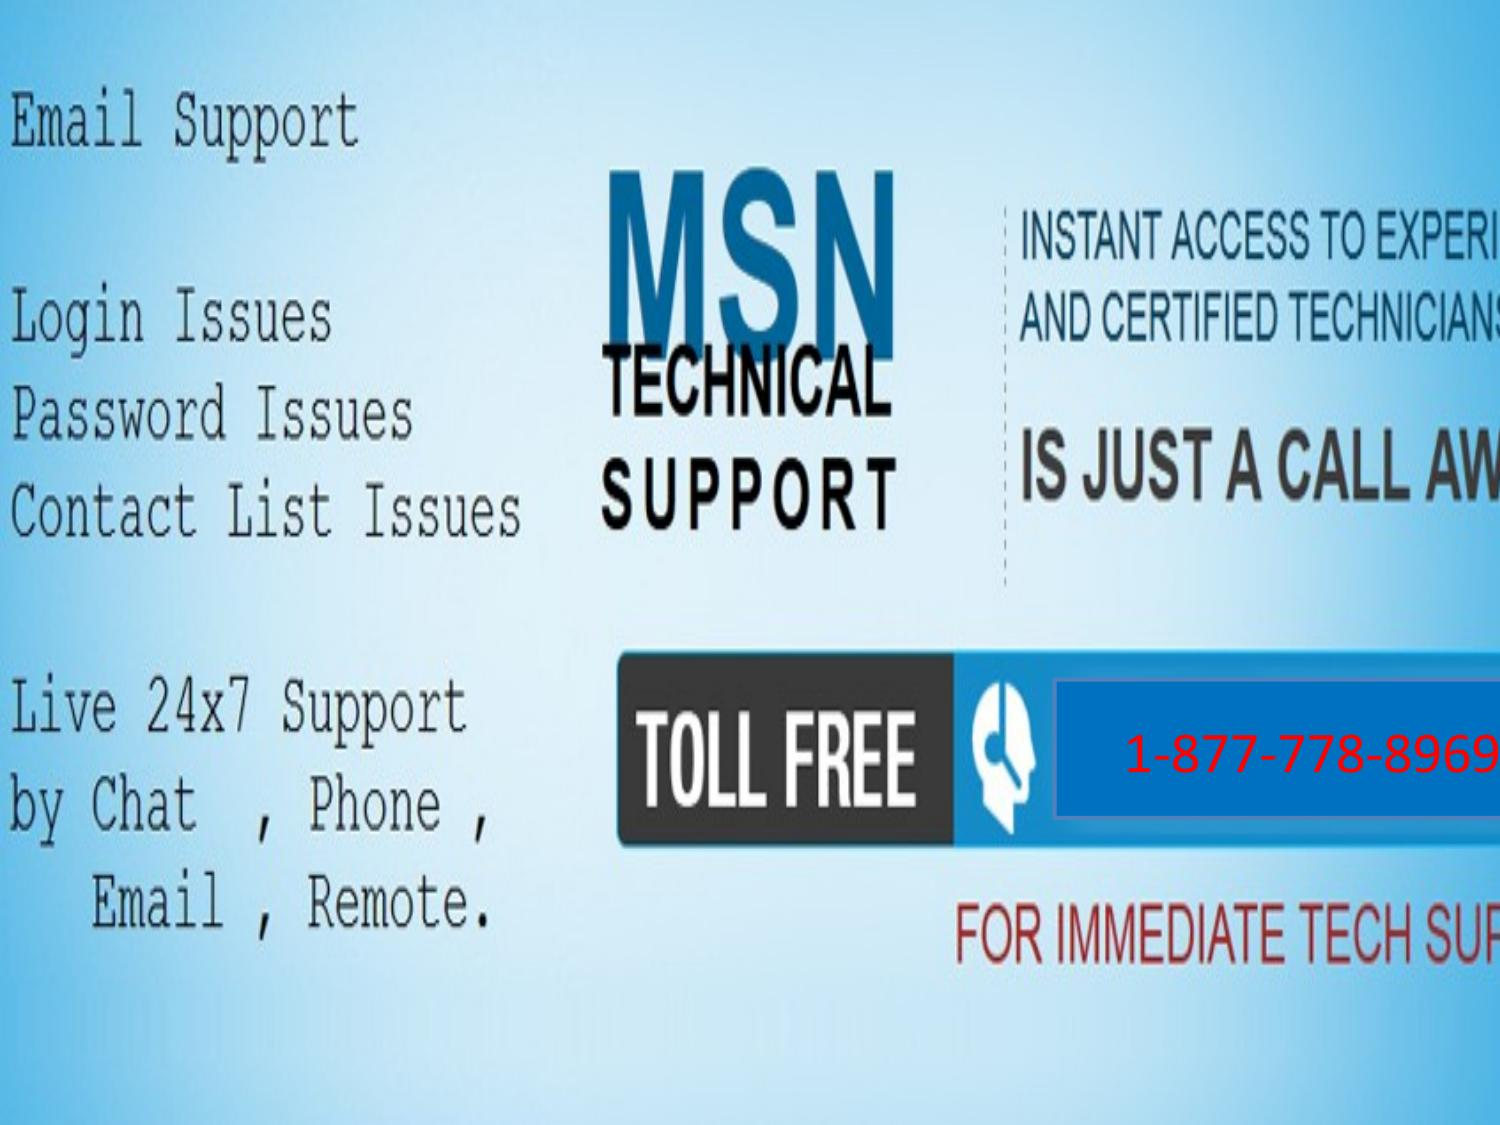 Dial [1 8 7 7 7 7 8 8 9 6 9]MSN TeCh SuPpOrt PhOnE NuMbEr